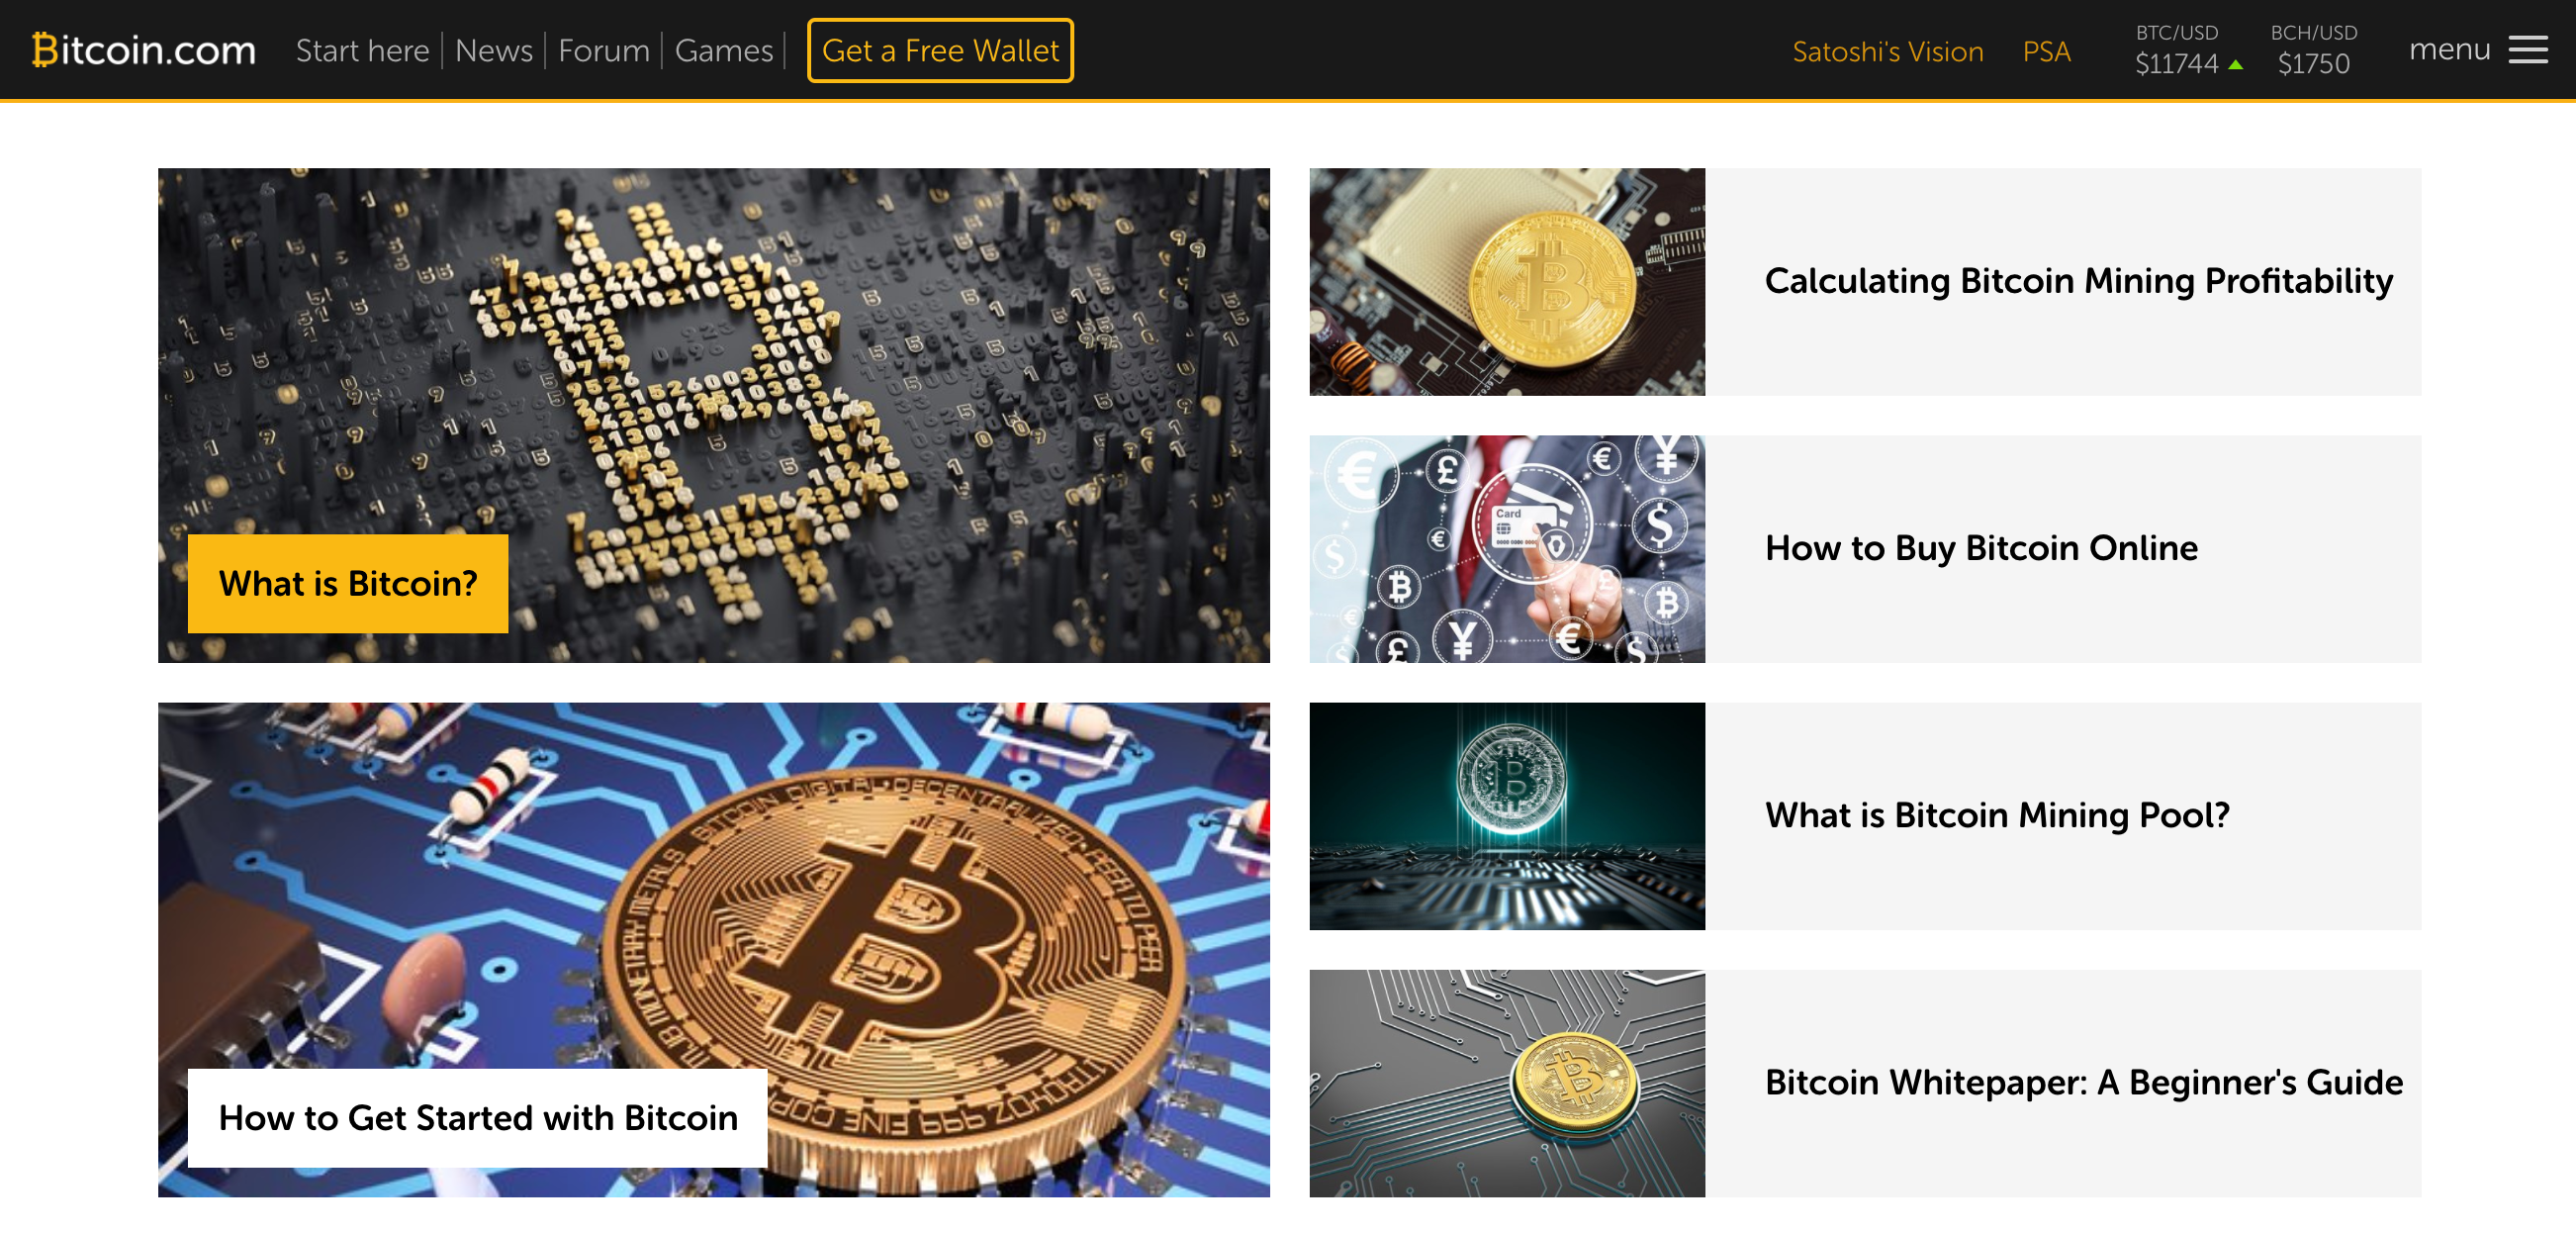 screenshot from Bitcoin website